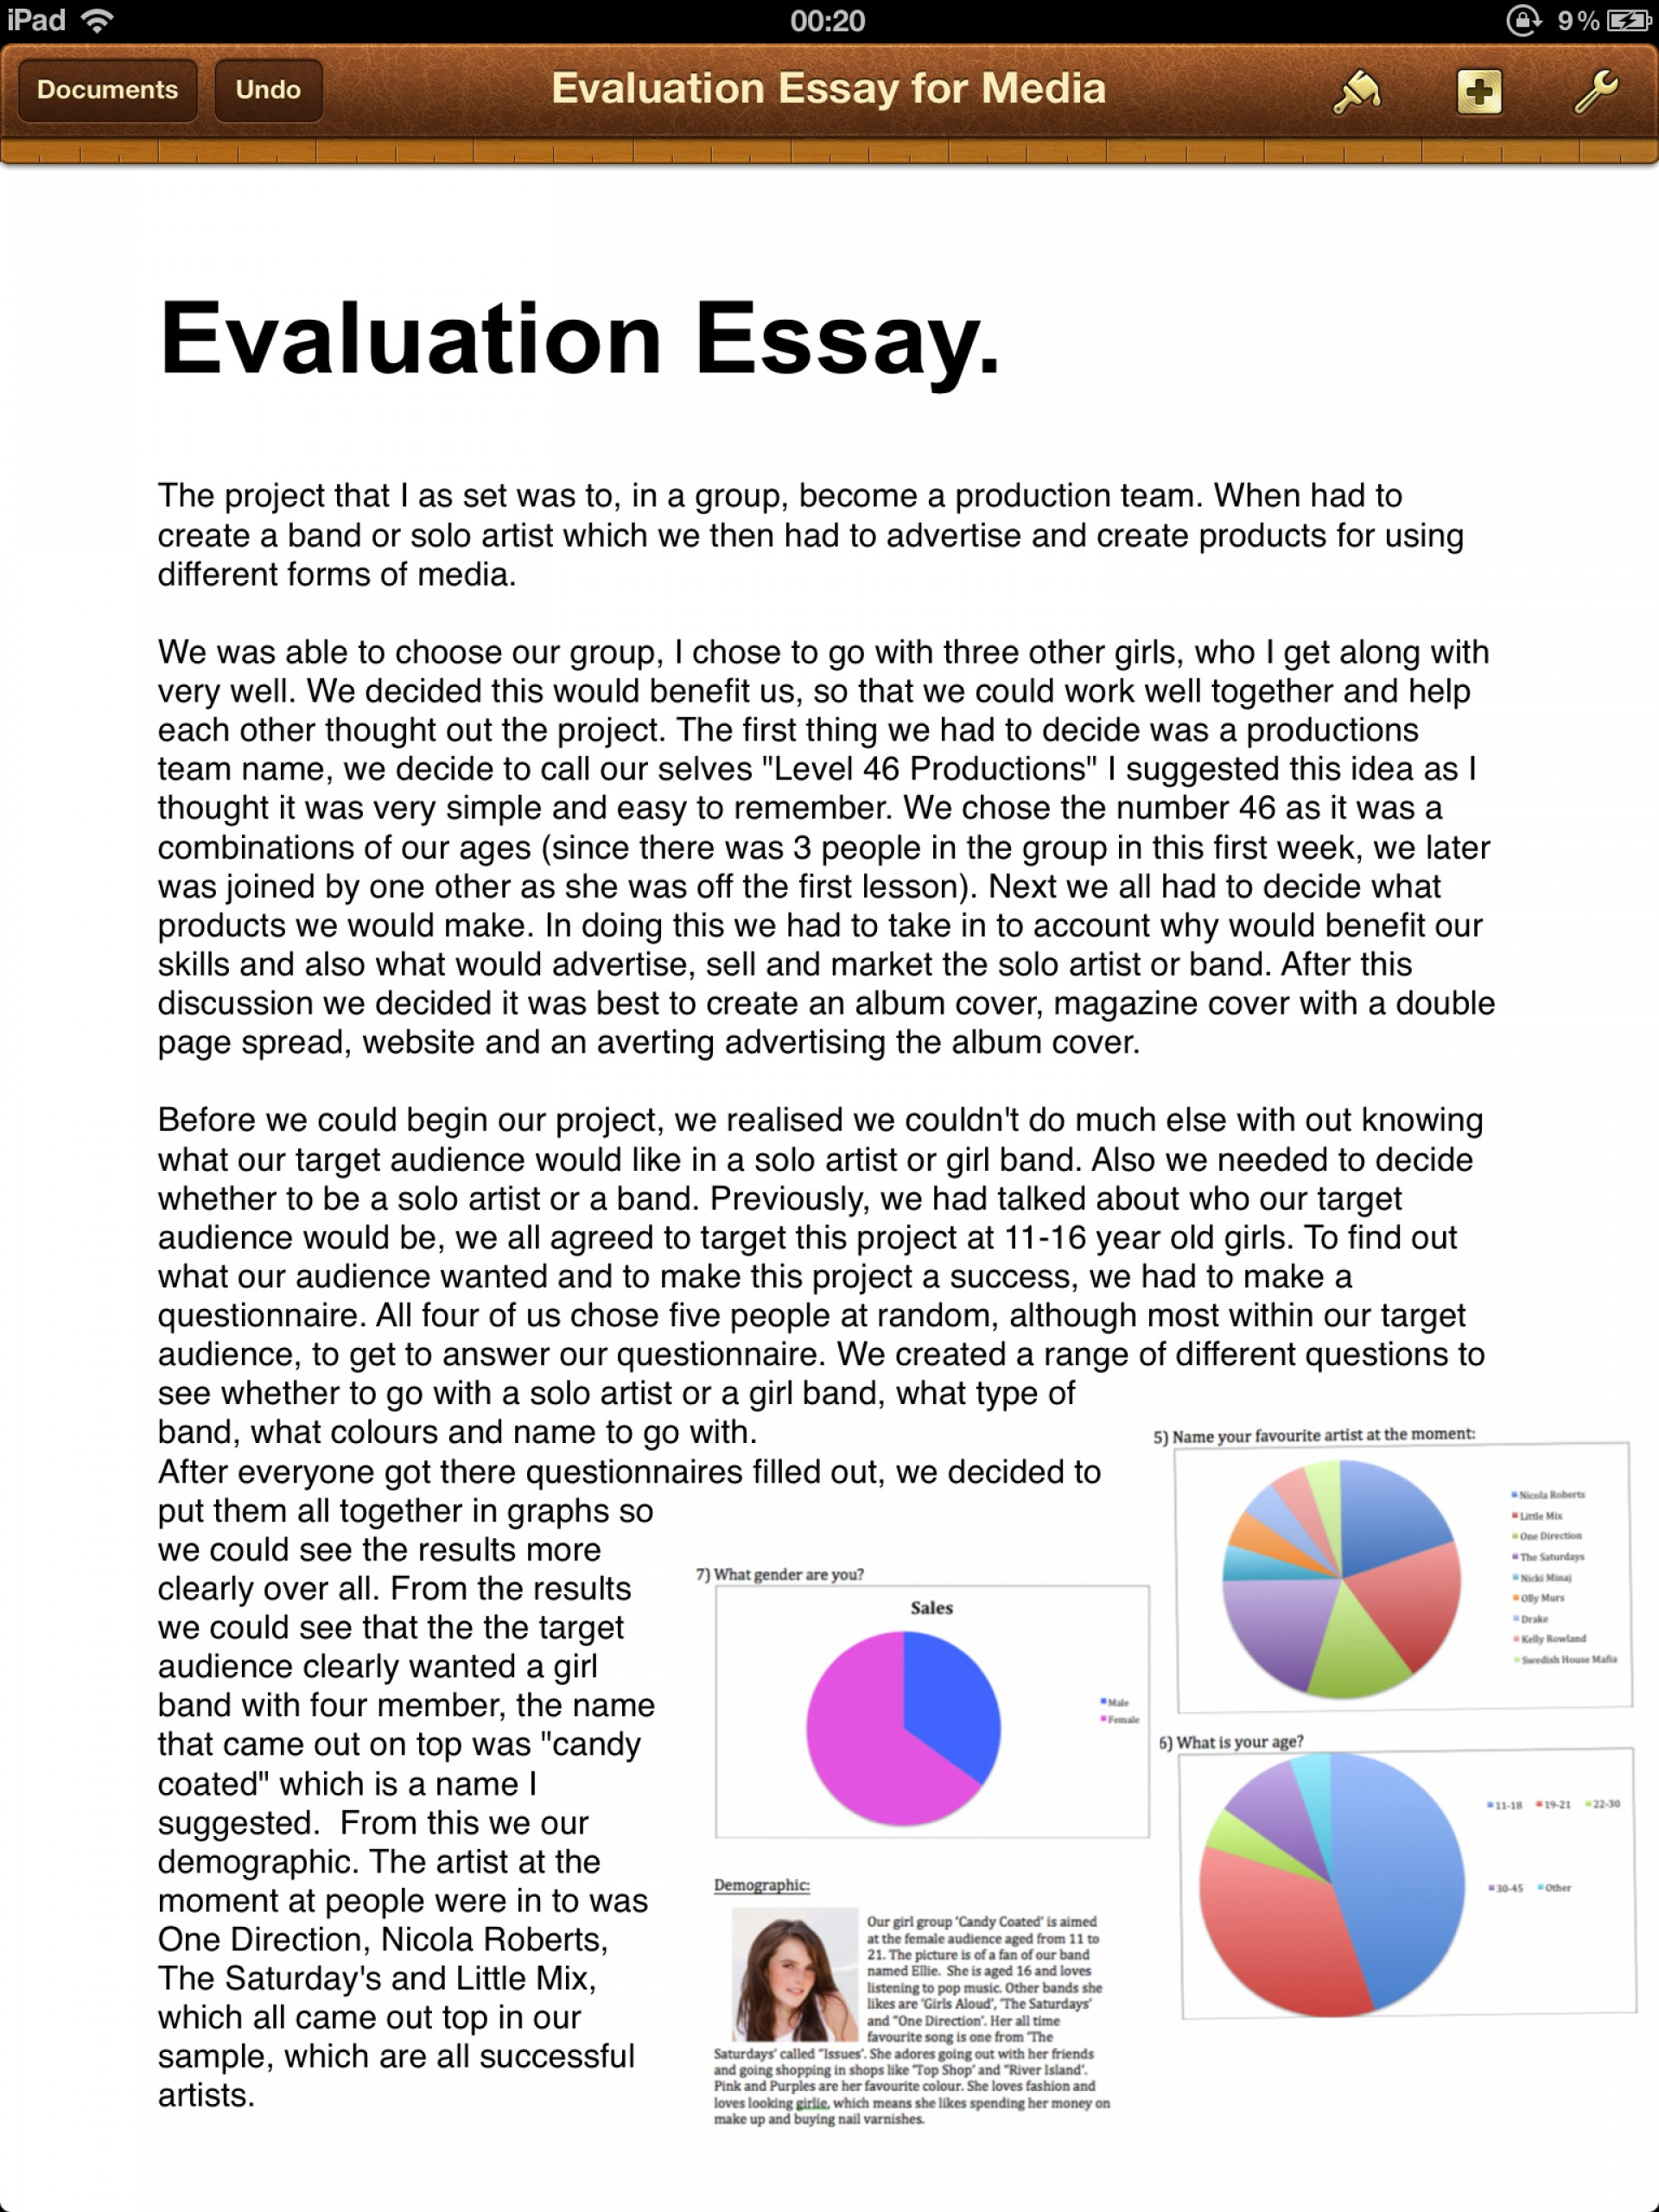 010 Pg Essay Example Incredible Evaluation Unique Topics On Horror Movies Definition 1920